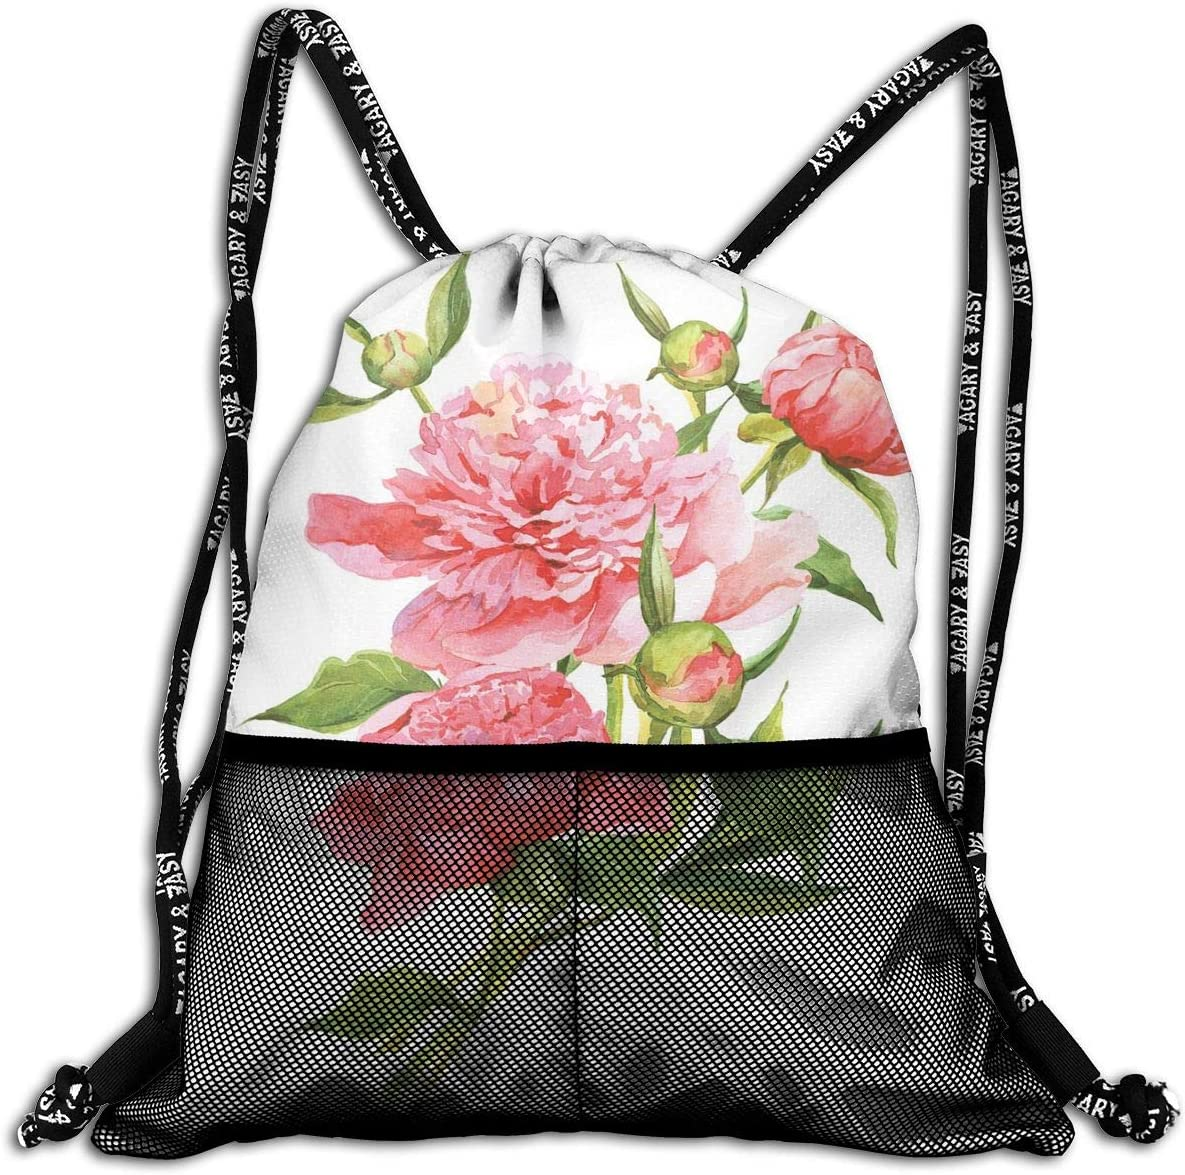 B07PBW49BK Drawstring Backpacks Bags,Pink Peonies With Strong Green Leaves Ecology Flourish Nature Inspired Bouquet,Adjustable 714uve7xafL